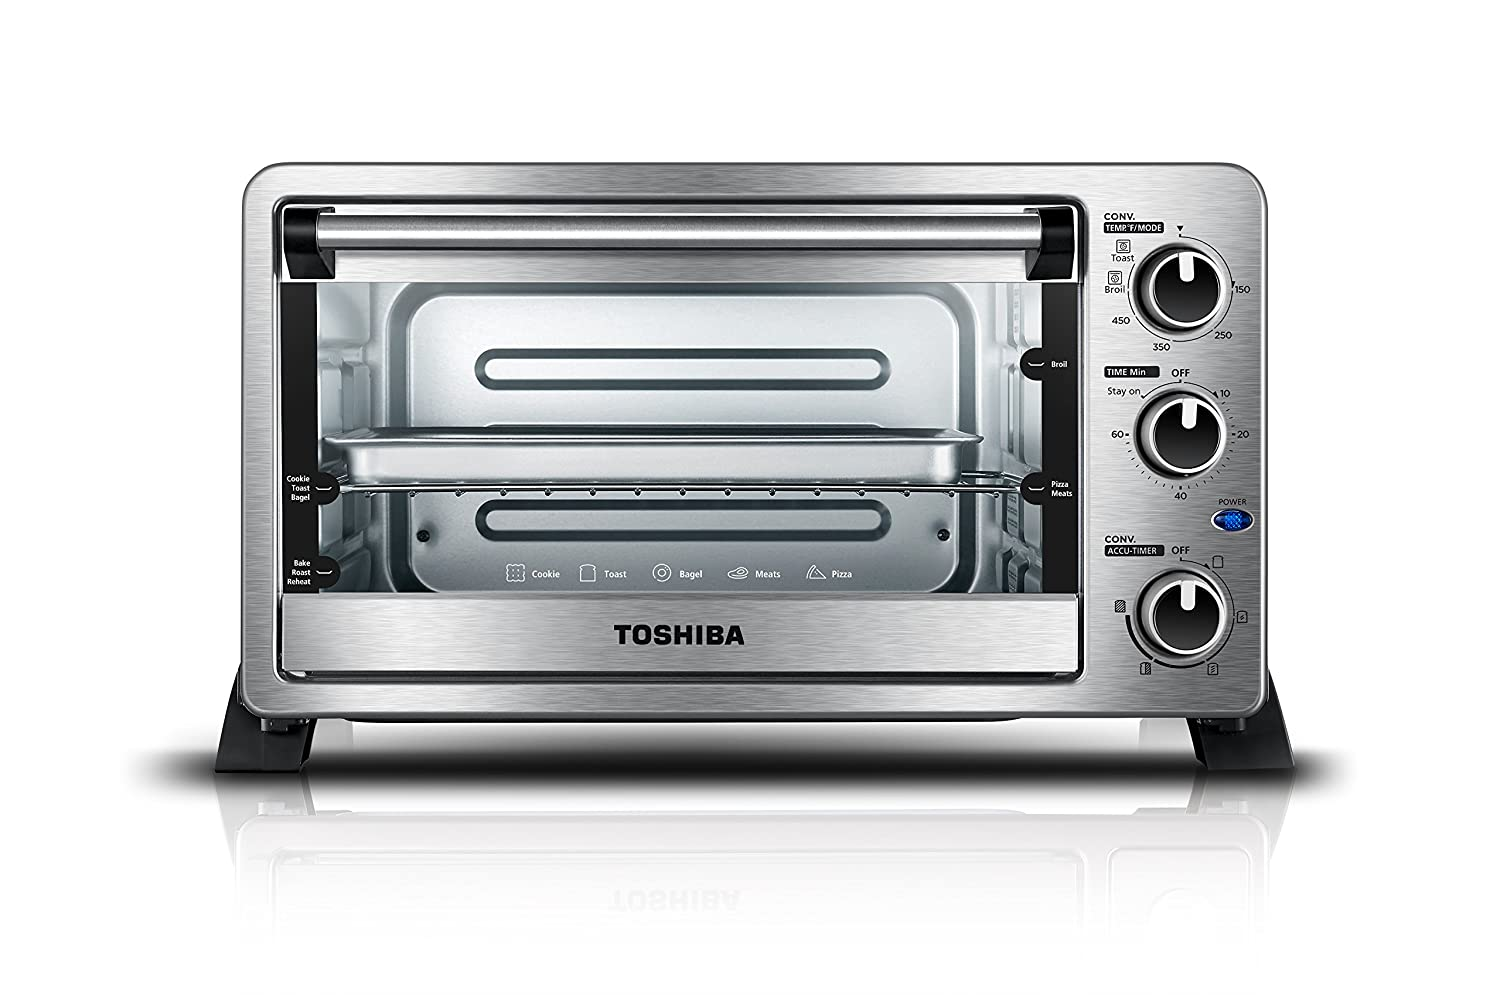 Toshiba MC25CEY-BS Mechanical Oven with Convection/Toast/Bake/Broil Function, 25 L Capacity/6 Slices Bread/12-inch Pizza, Black Stainless Steel